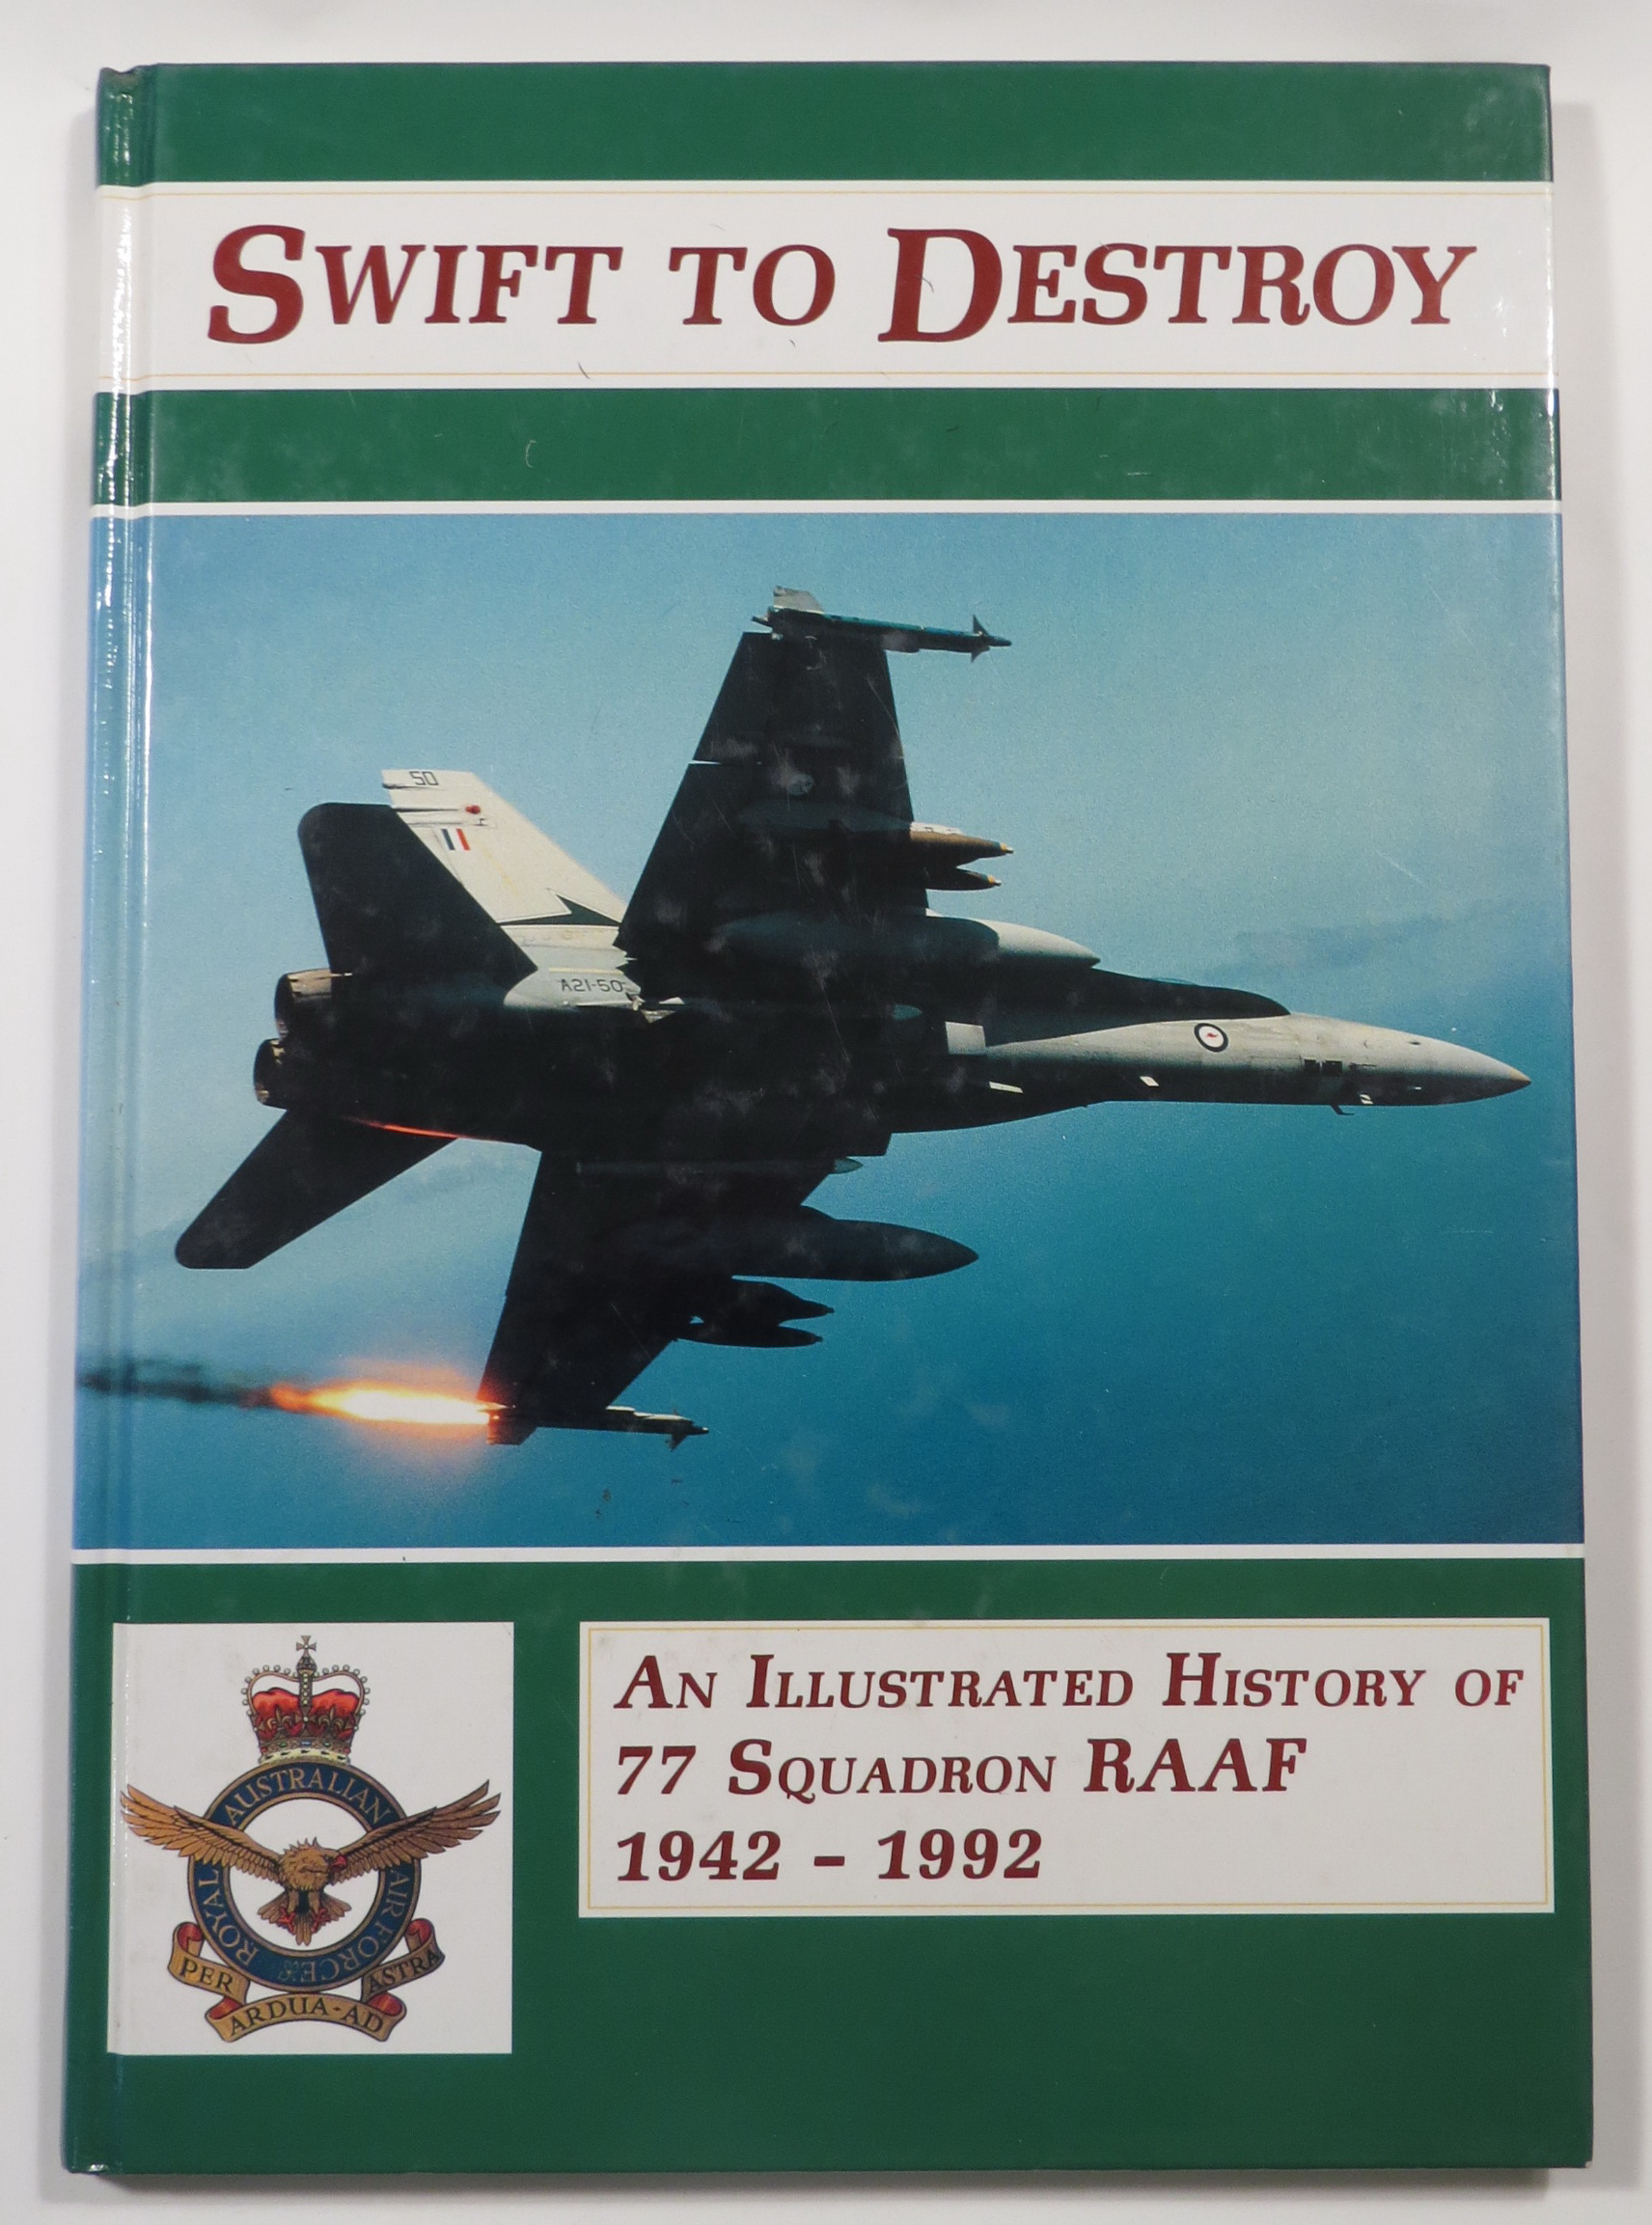 Image for 'Swift to Destroy' - An Illustrated History of 77 Squadron RAAF 1942-1992